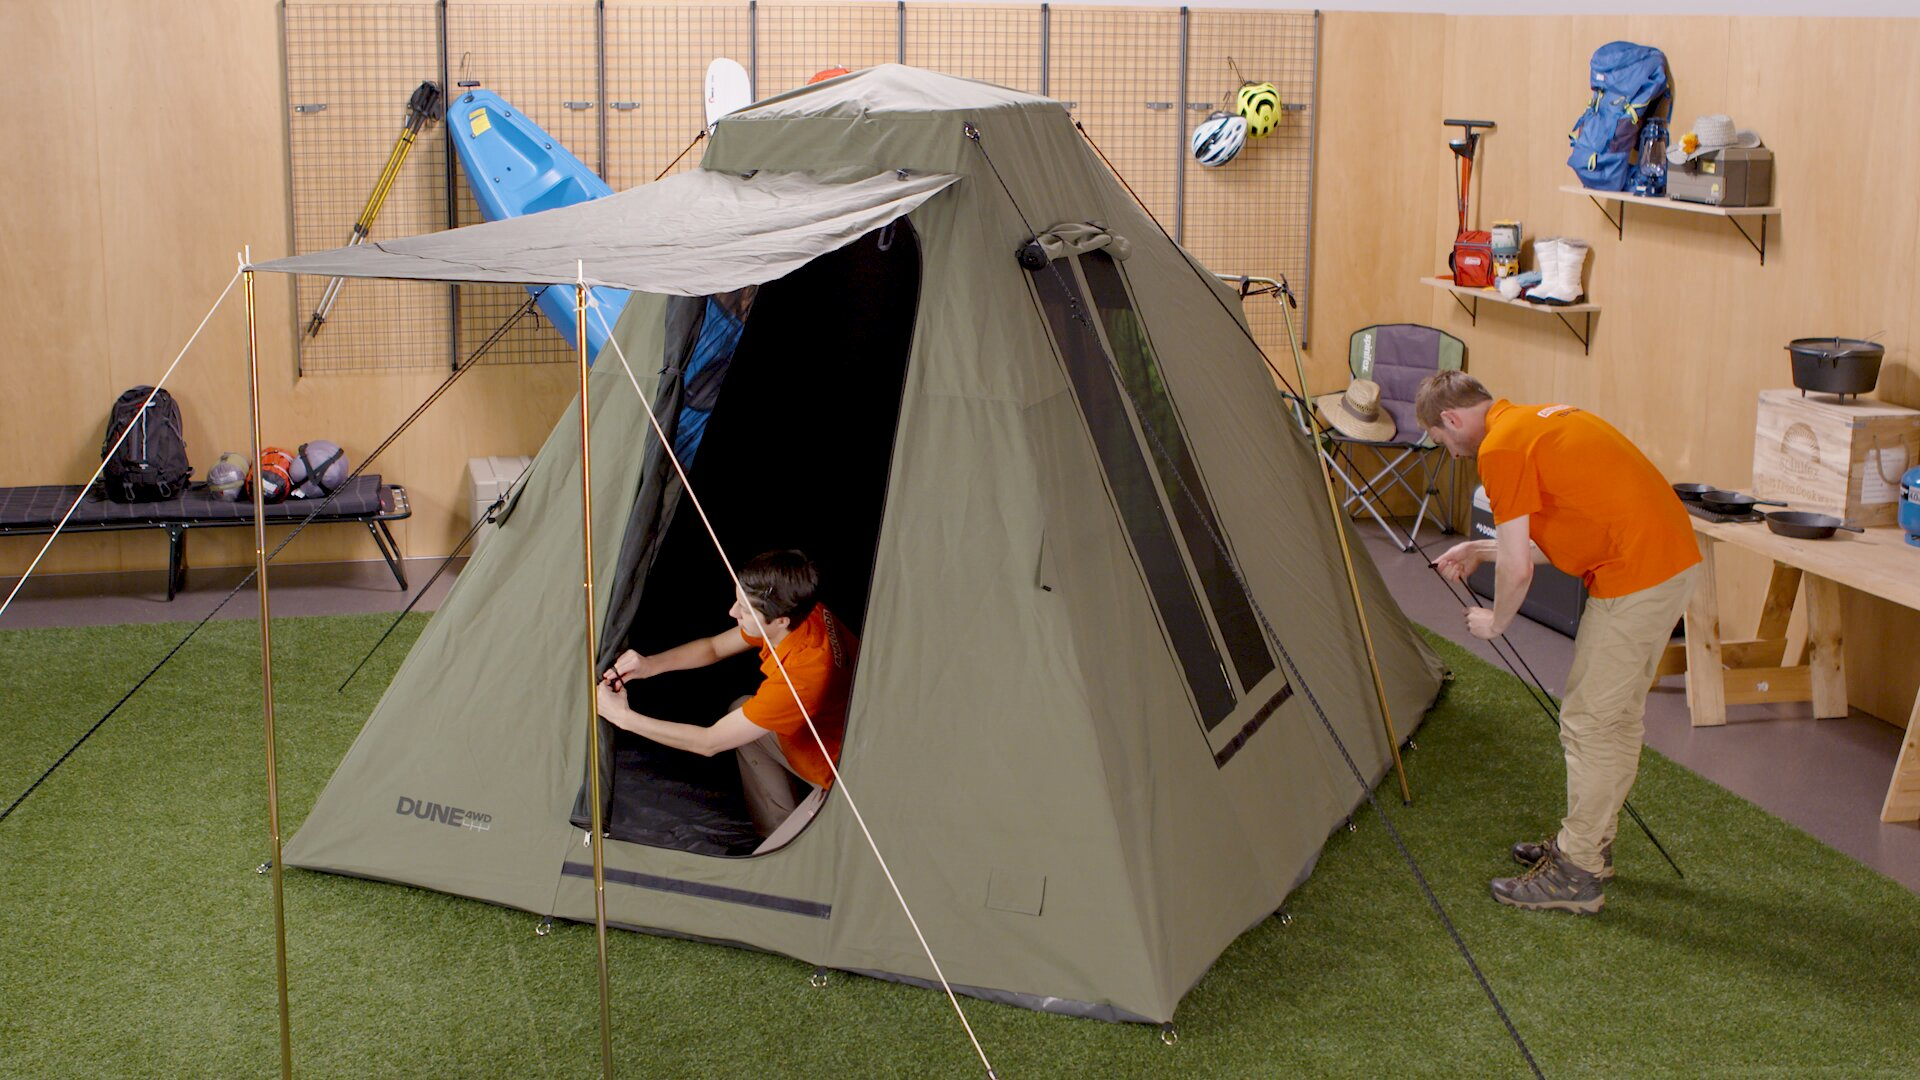 How To Choose A Camping Tent - Teepee